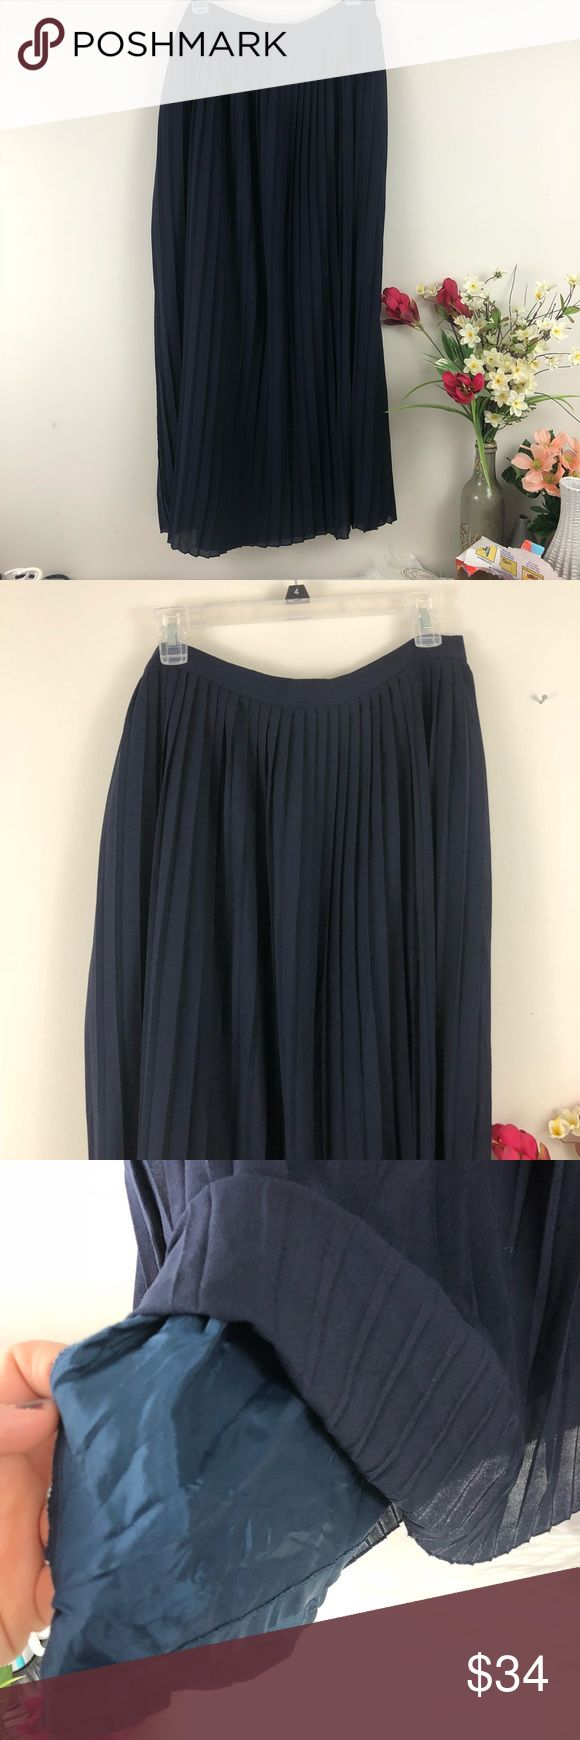 J. Crew Navy Pleated Fully Lined Maxi Skirt Deep navy maxi skirt from J. Crew. It features a thin waist band with a zipper and hook and eye closure on the back. The body of the skirt is Pleated all the way around and is fully lined underneath. Not sheer at all. It's in excellent condition with no flaws. The waist and length measurements are included in the last two images. (Location) {no trades - no modeling} J. Crew Skirts Maxi